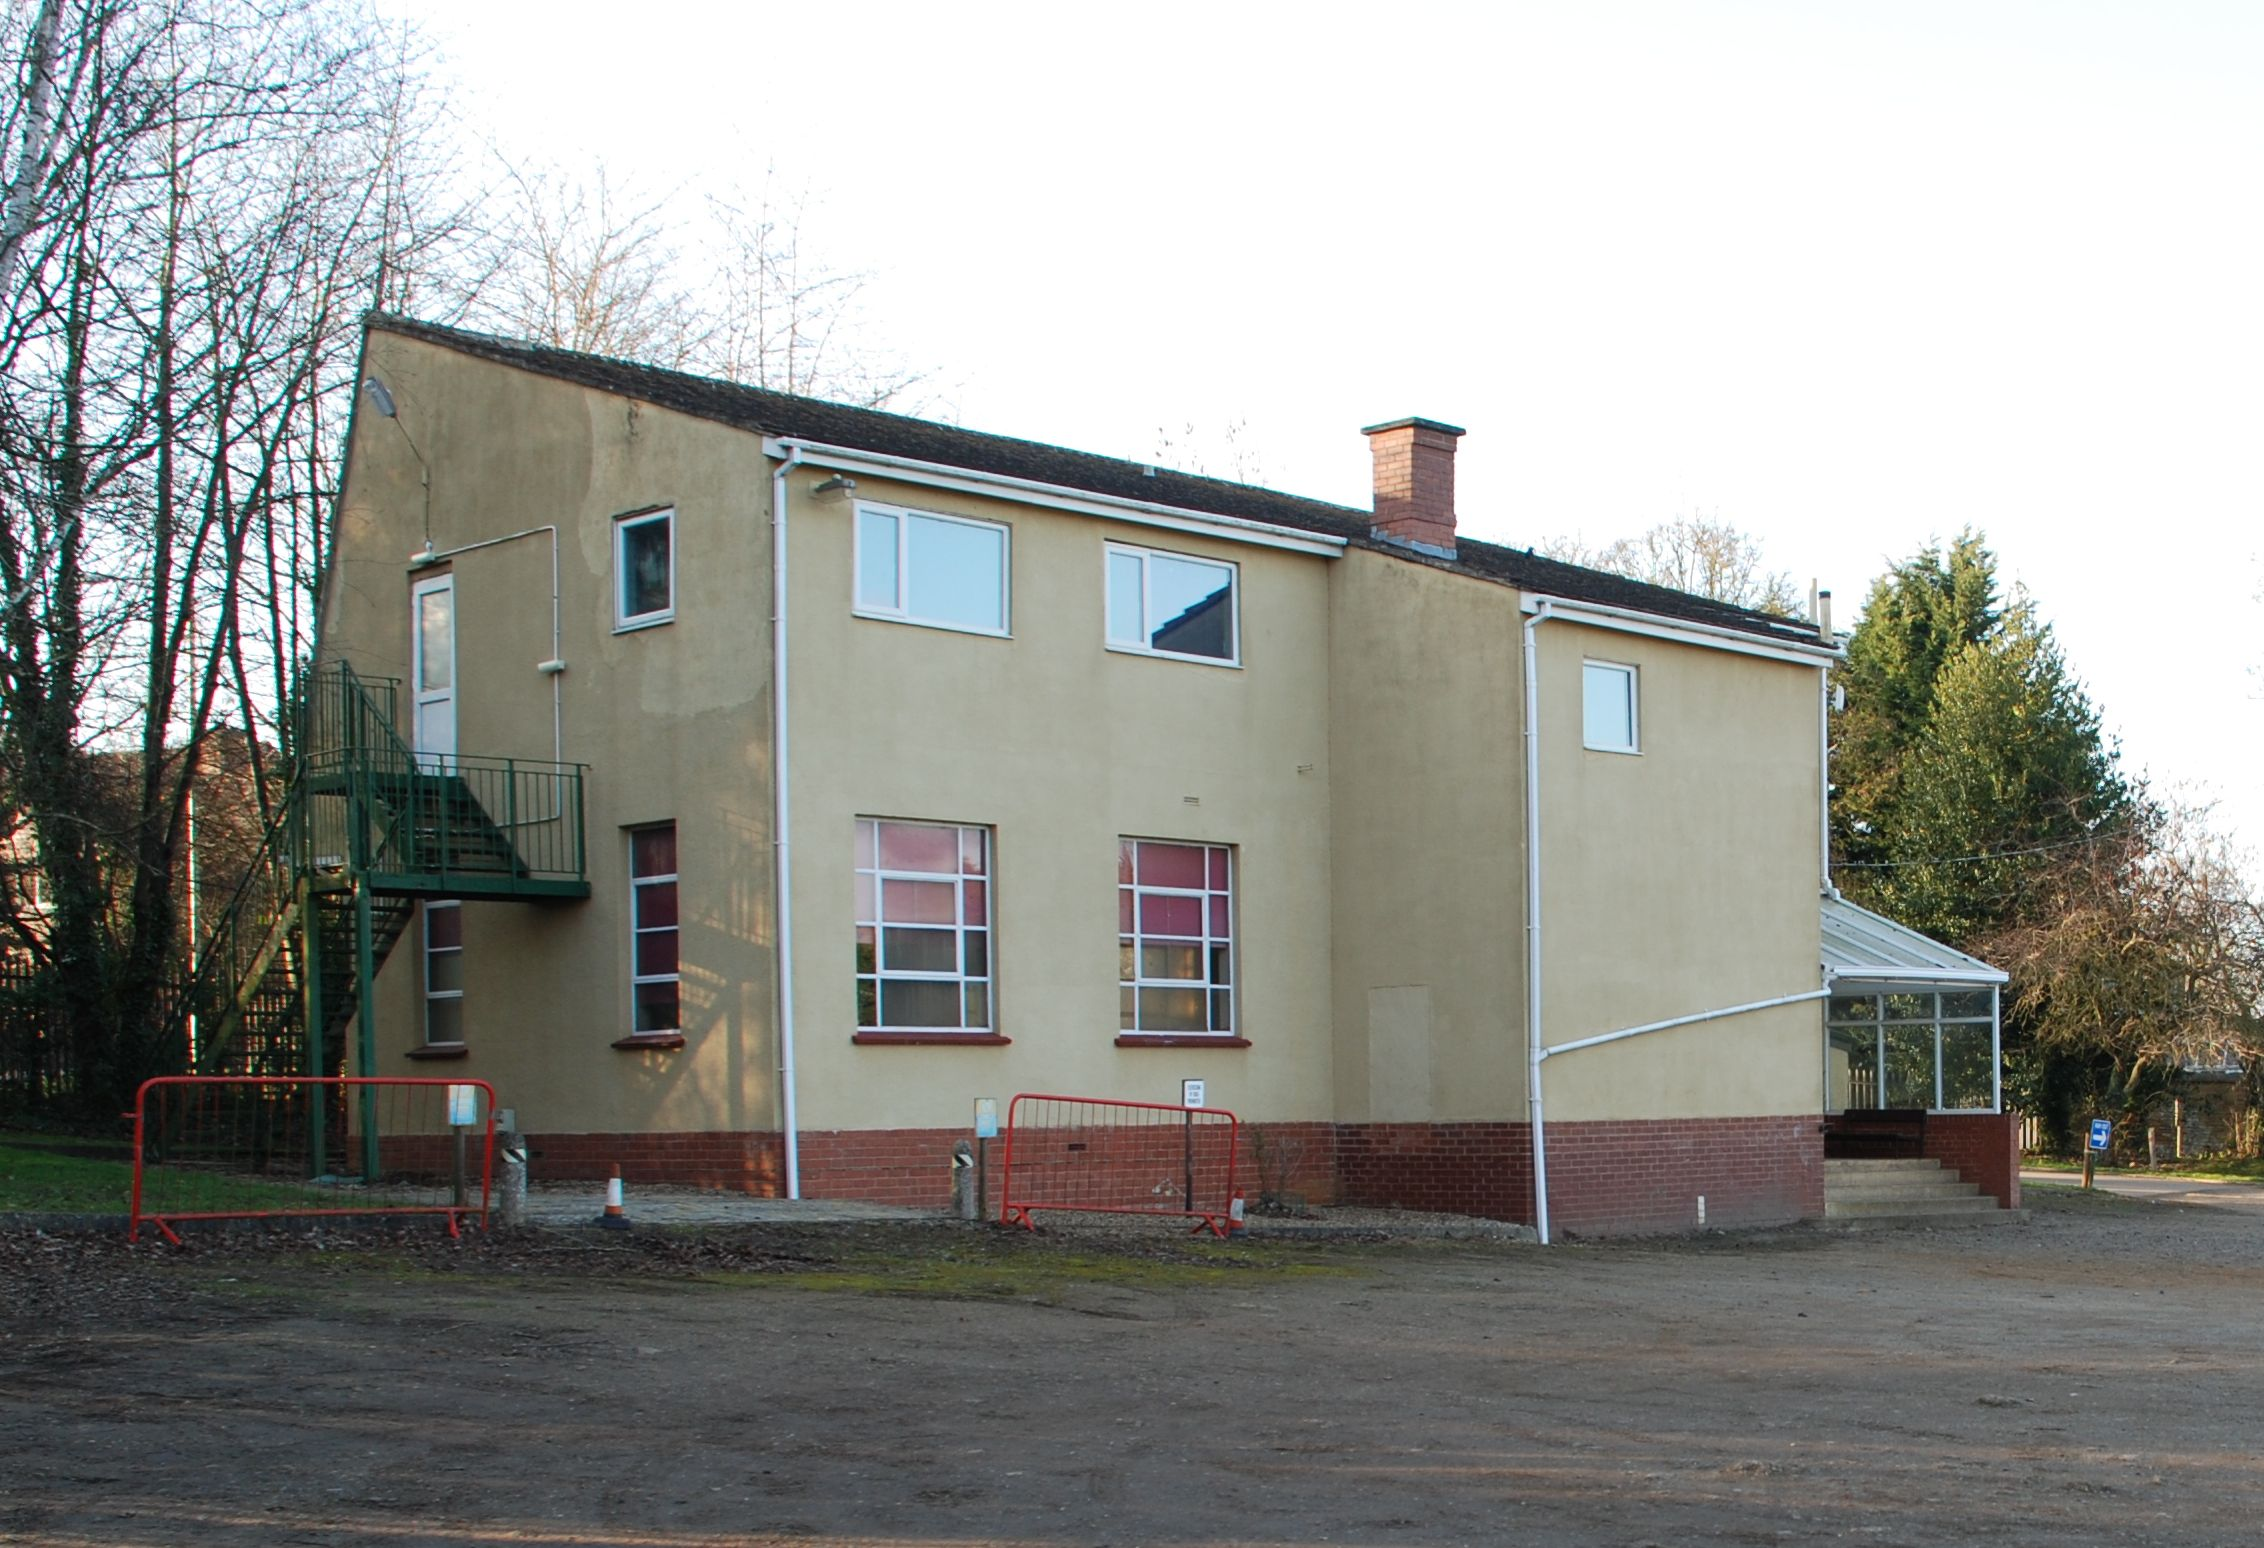 Pack Holiday Centre front